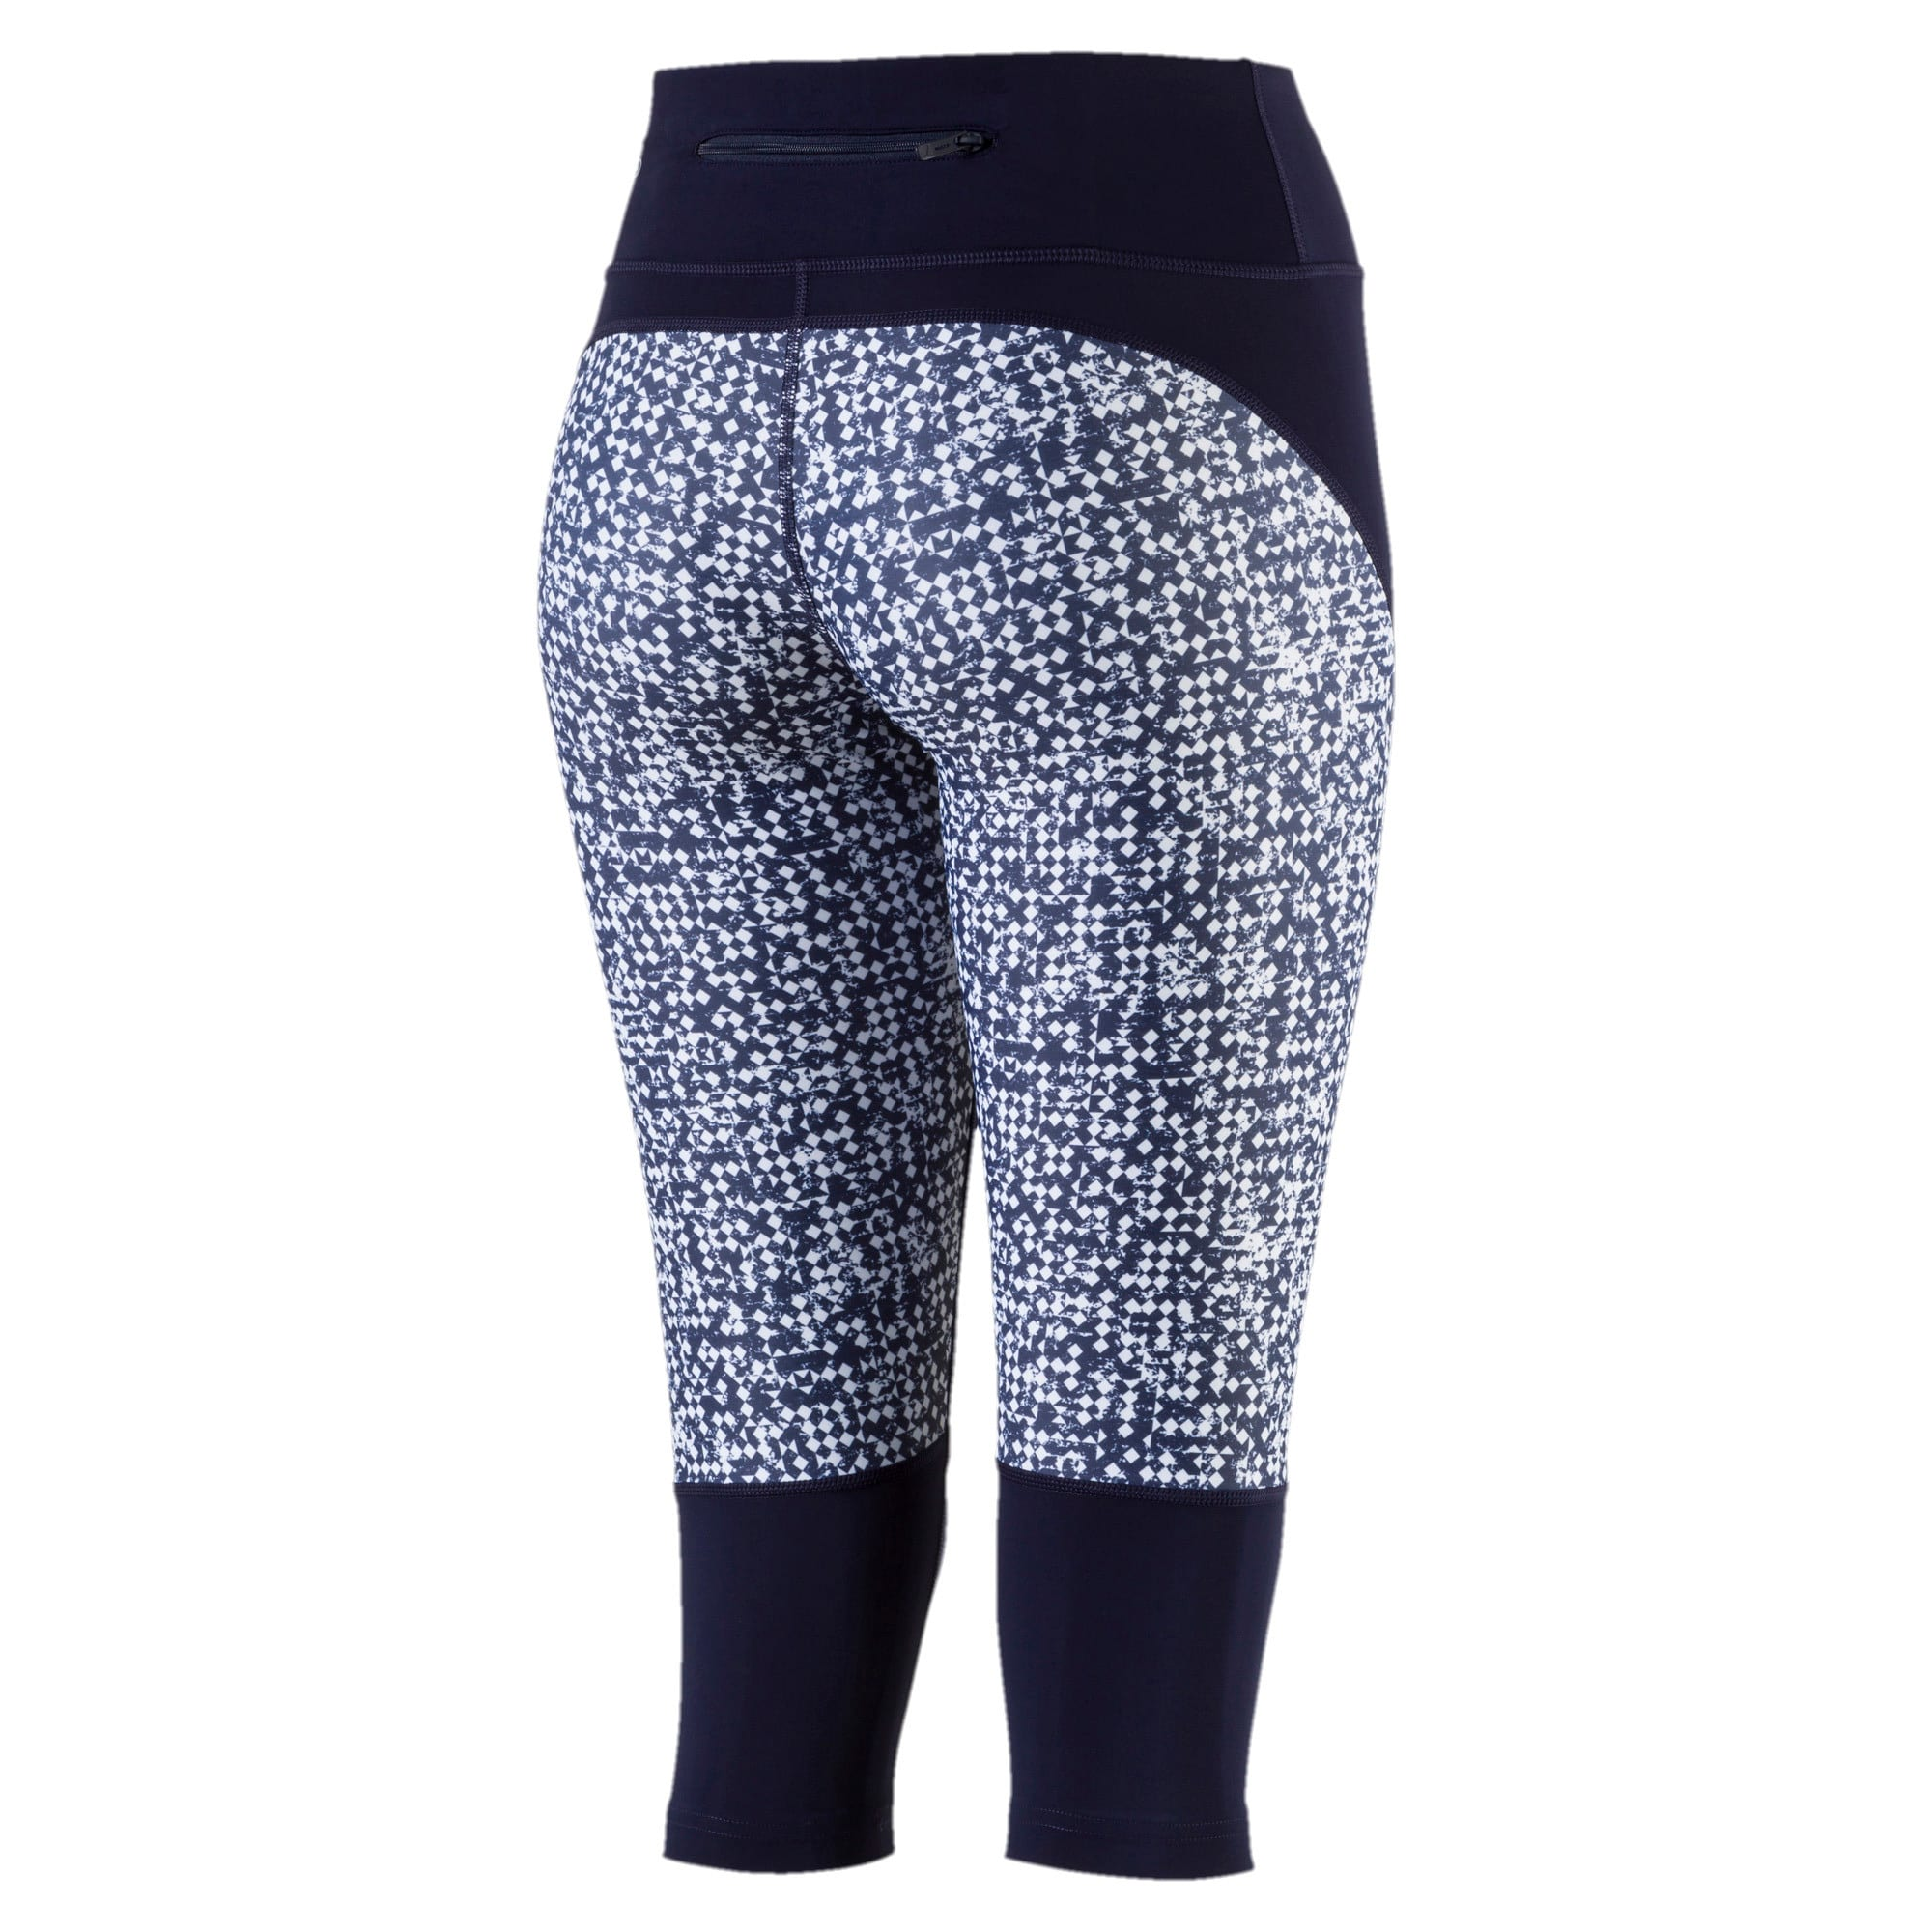 Thumbnail 2 of Active Training Women's Culture Surf 3/4 Tights, Peacoat-white box print, medium-IND